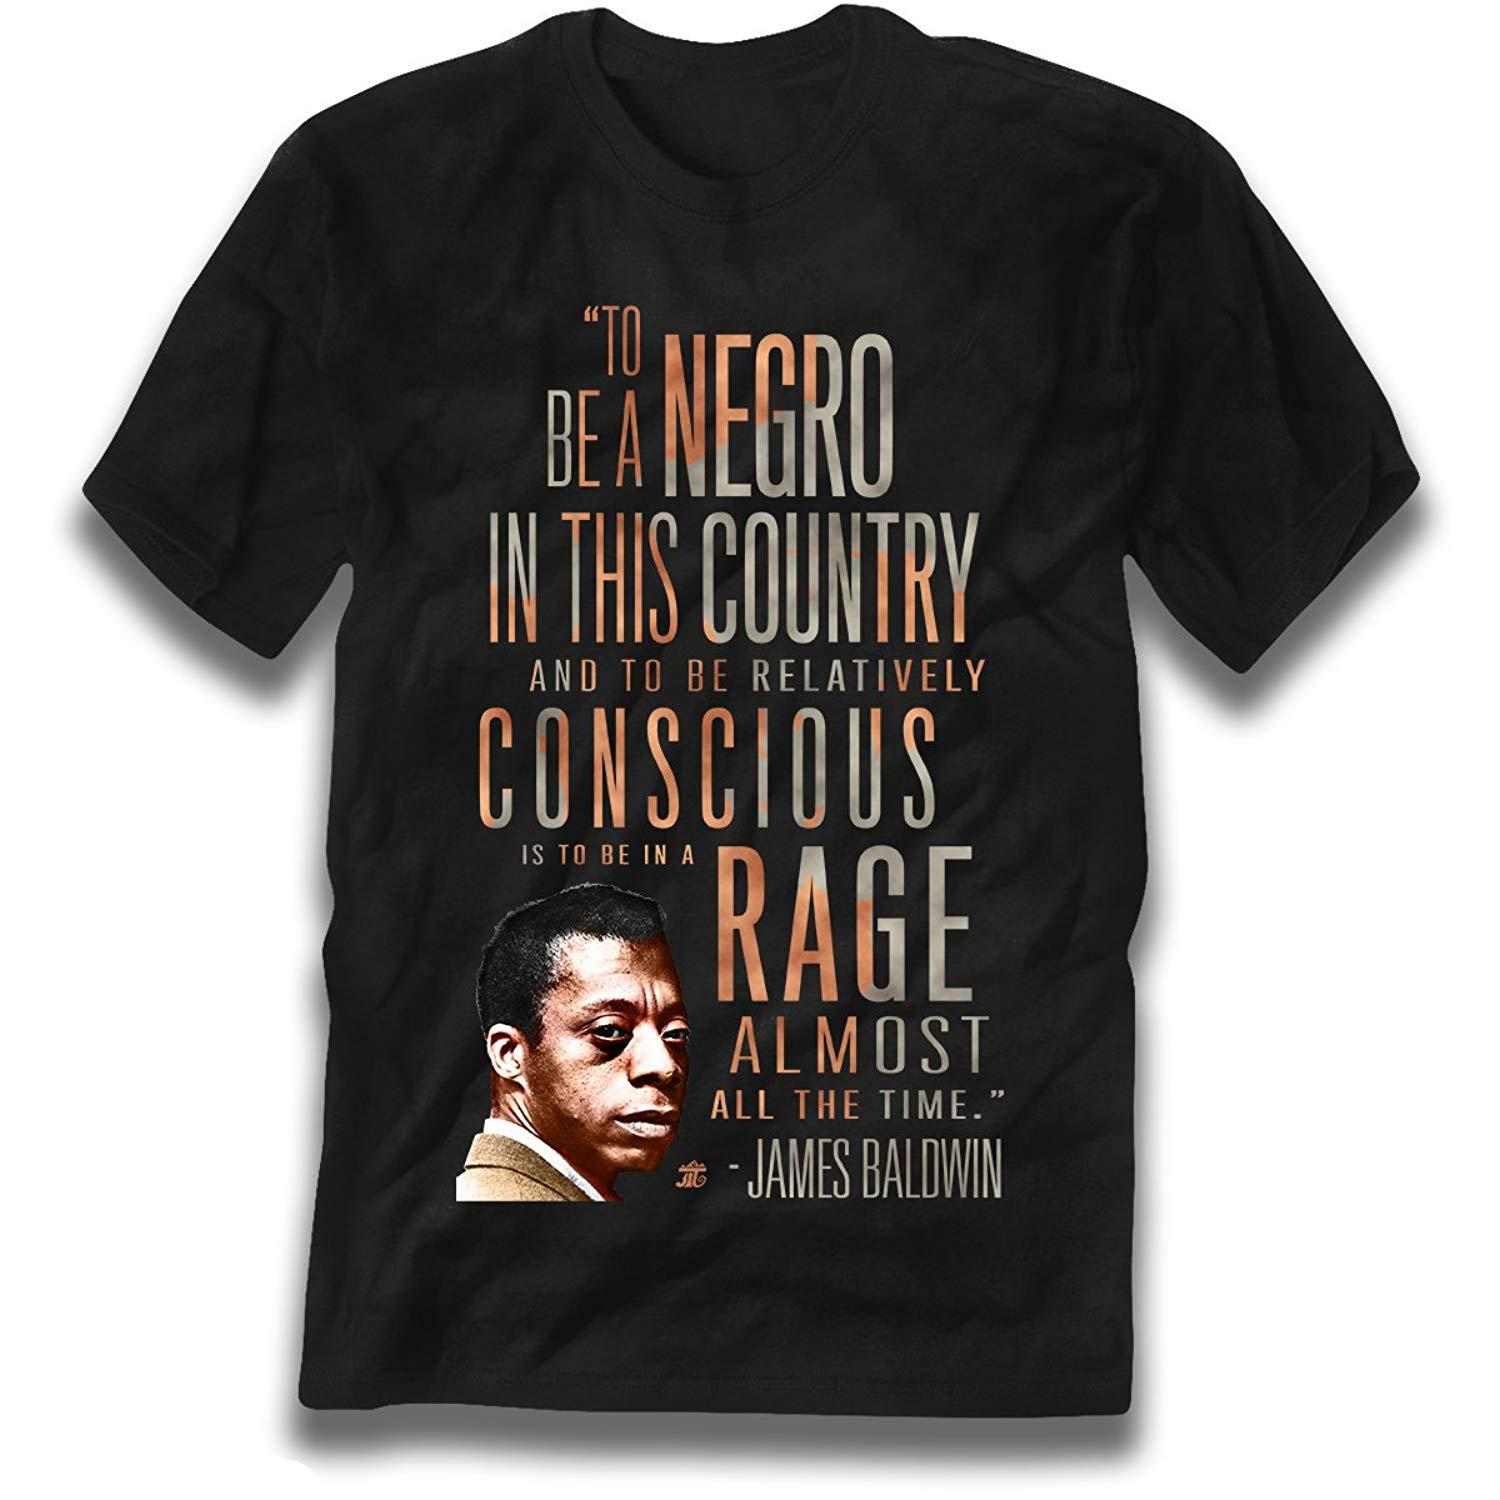 James Baldwin 'rage Almost All The Time' Wholesale Discount Tee Men's Fashion Short - Sleeve T Shirt Mens